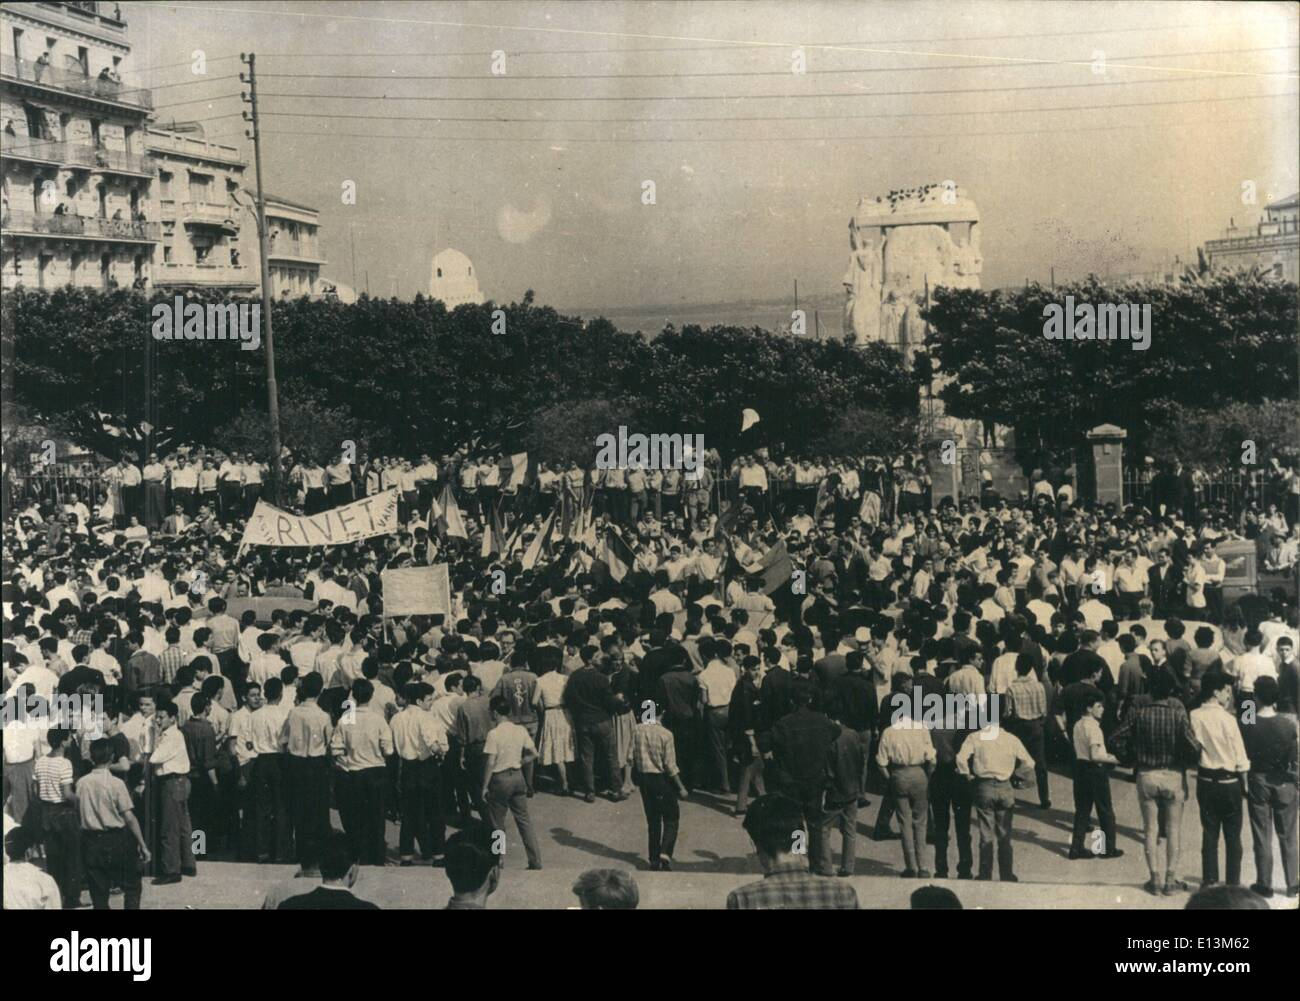 Mar. 22, 2012 - Riot in Algiers: General view of the crowd of Nationalist Frenchmen Marching to the ''Unknown Soldier's Moment' - Stock Image